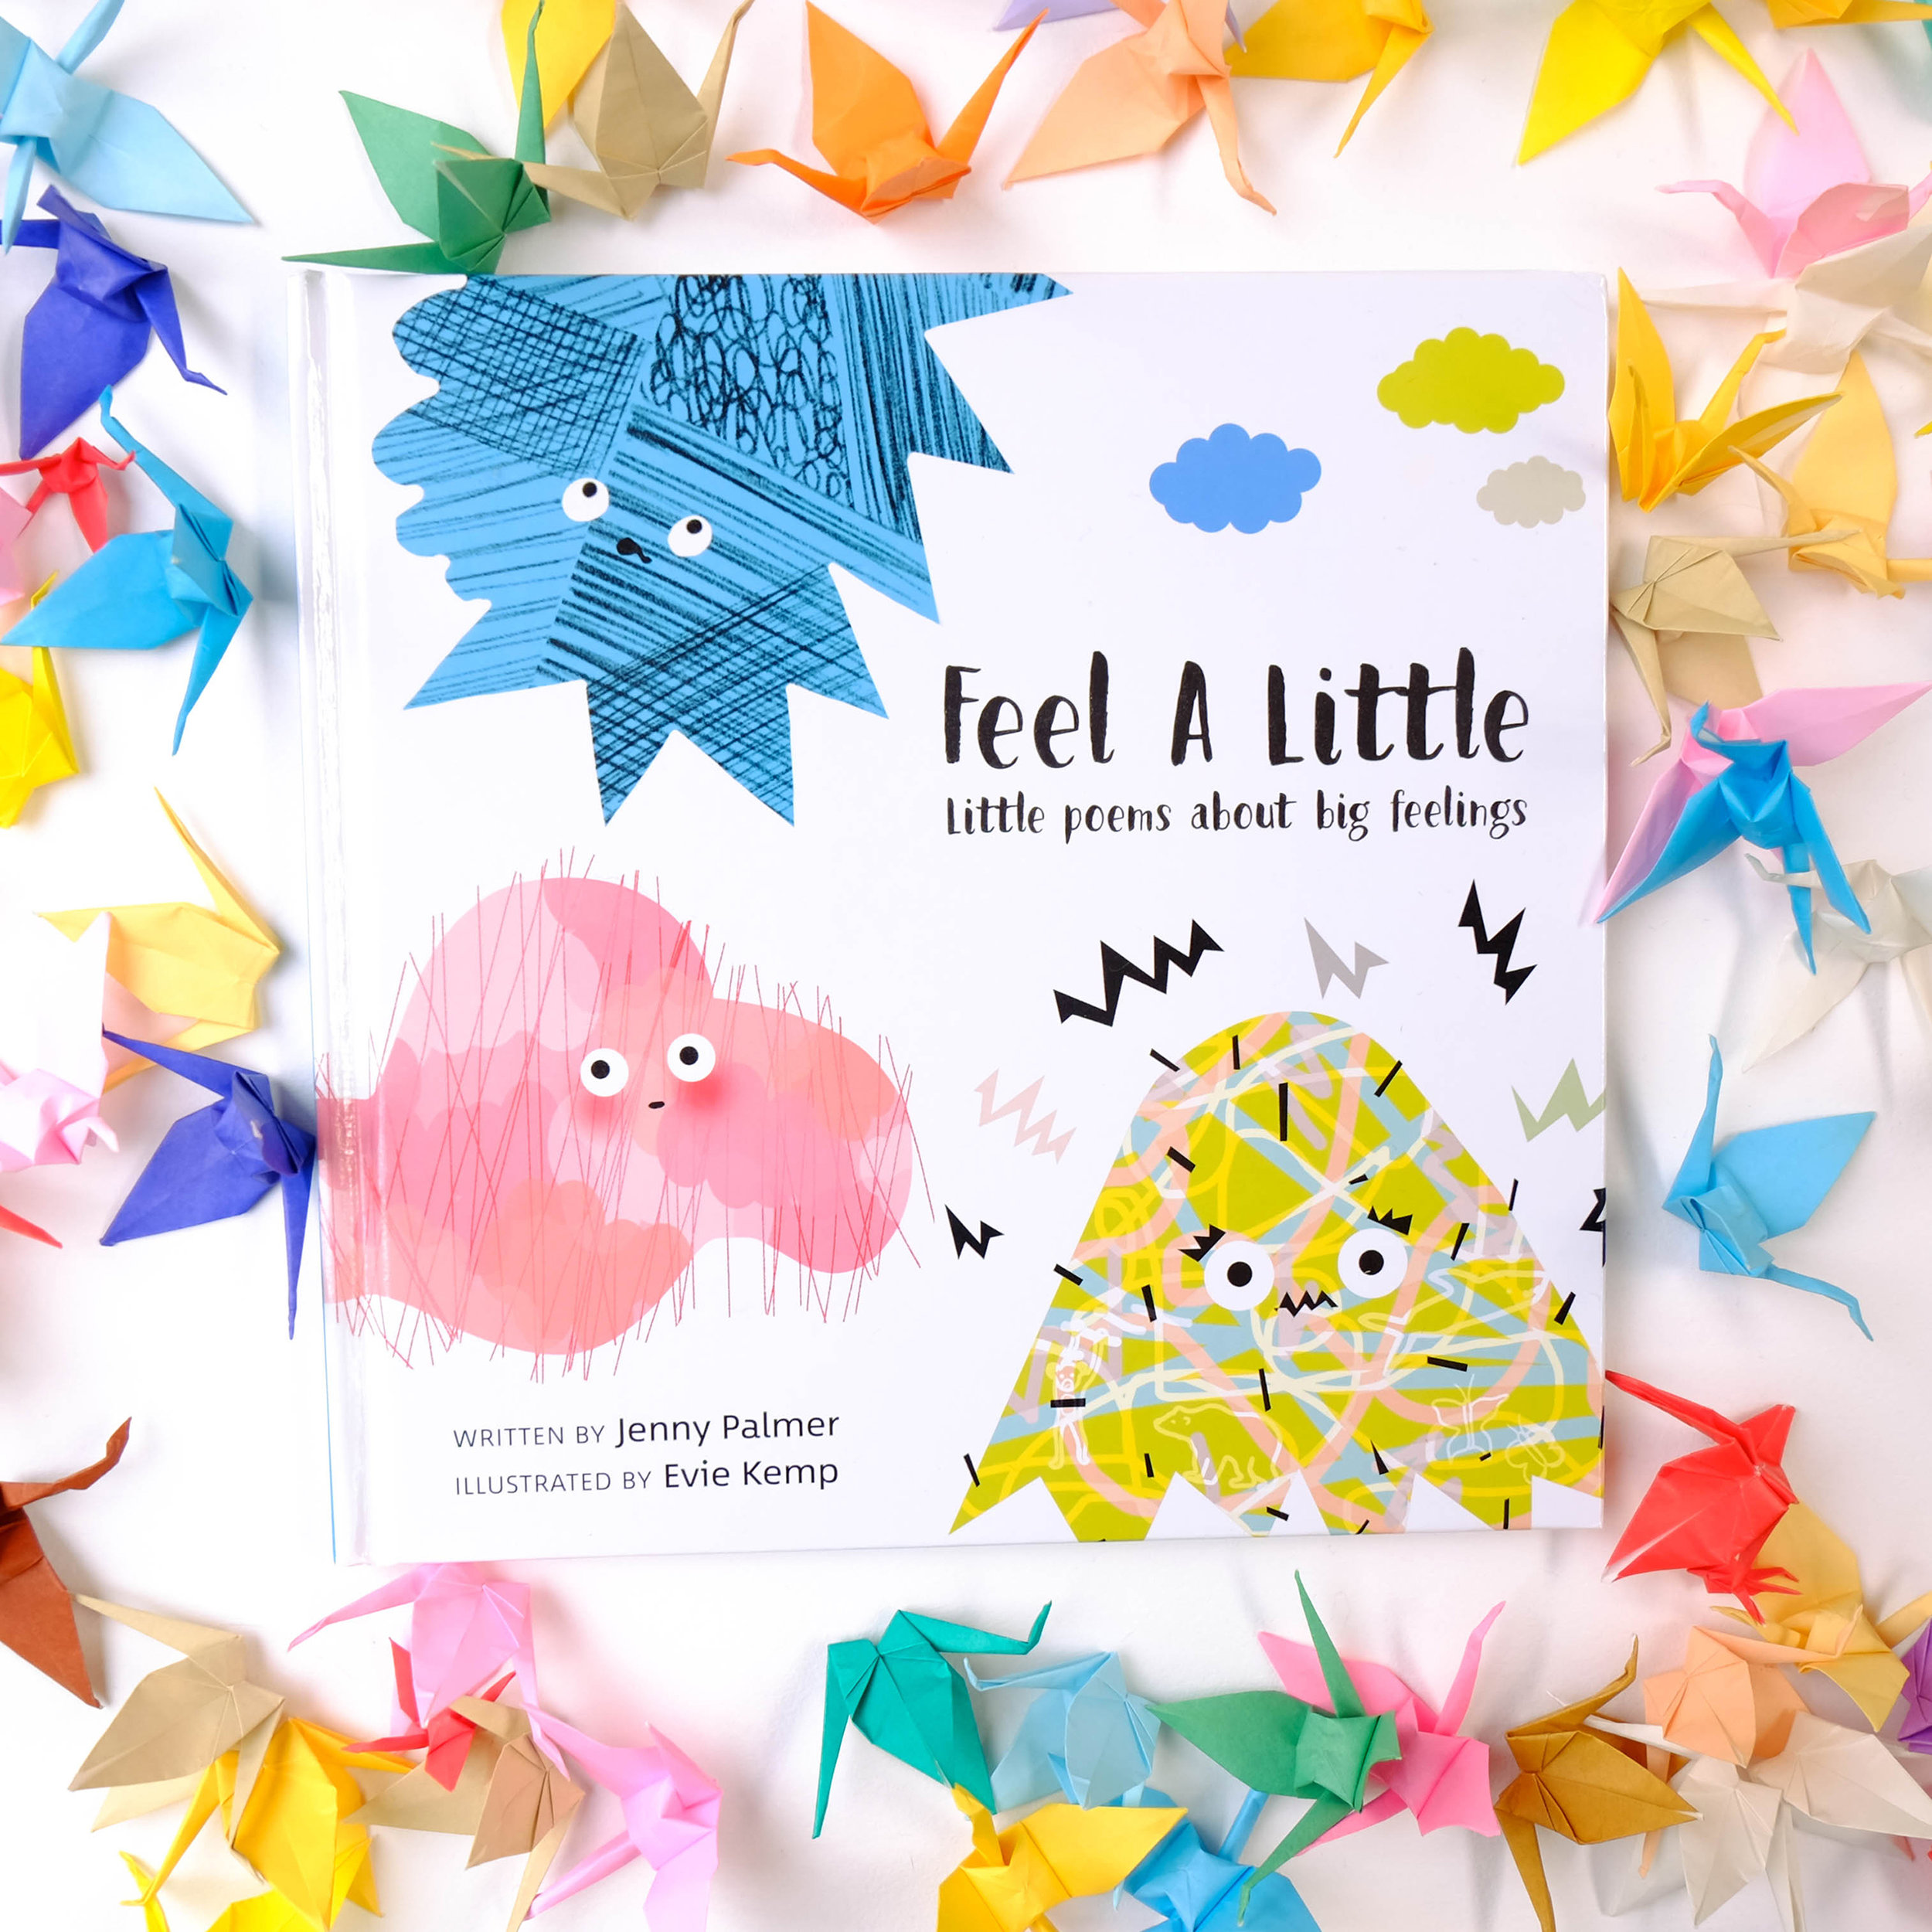 'Feel A Little' Book  Feel A Little is a best-selling, colourful, character-filled book about big feelings for little ones. Written by Jenny Palmer and illustrated by Evie Kemp.